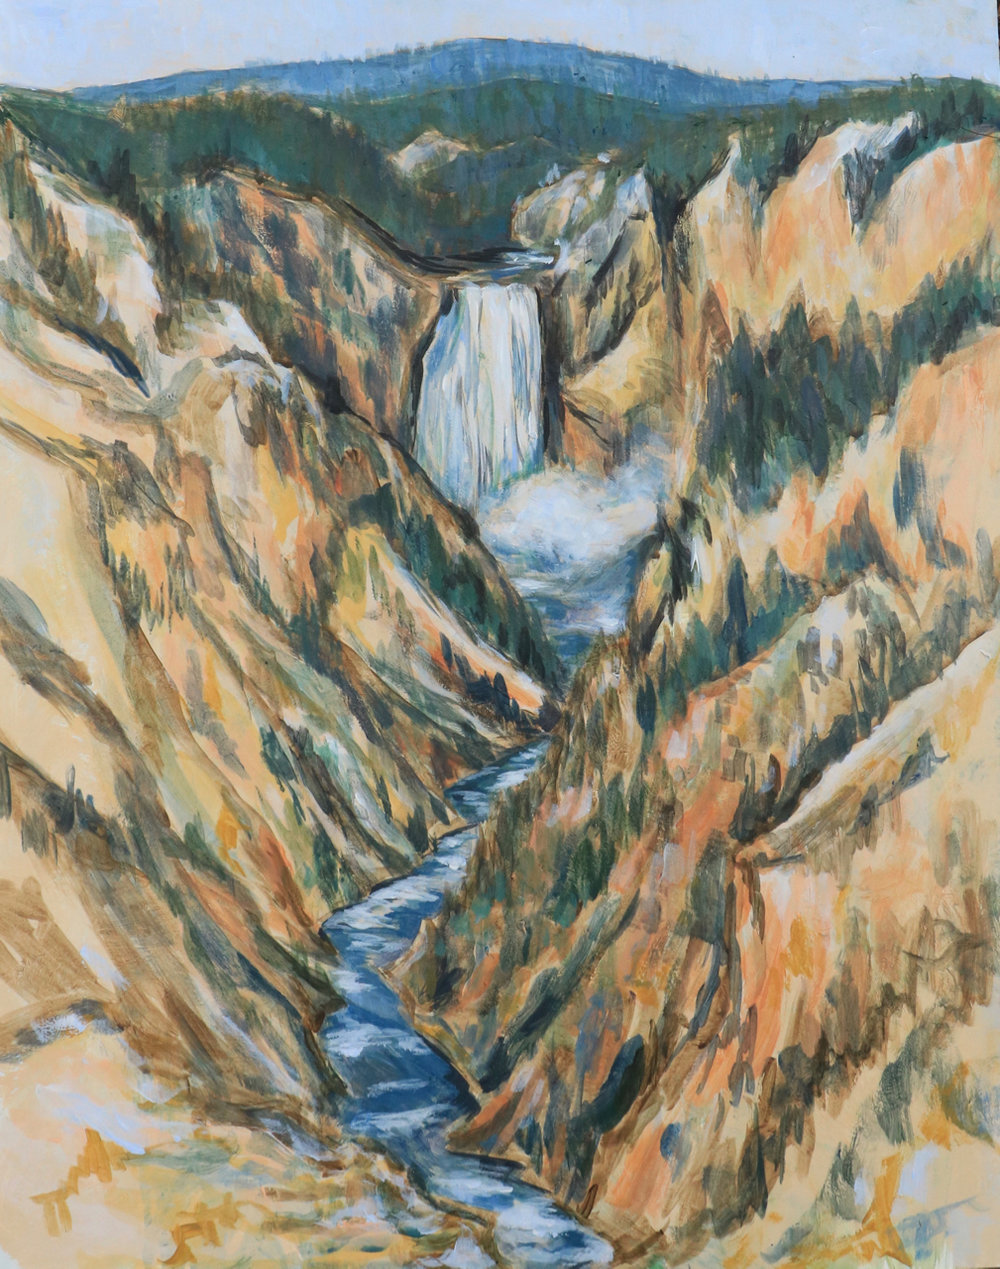 Lower Falls in the Morning, Yellowstone - acrylic on board